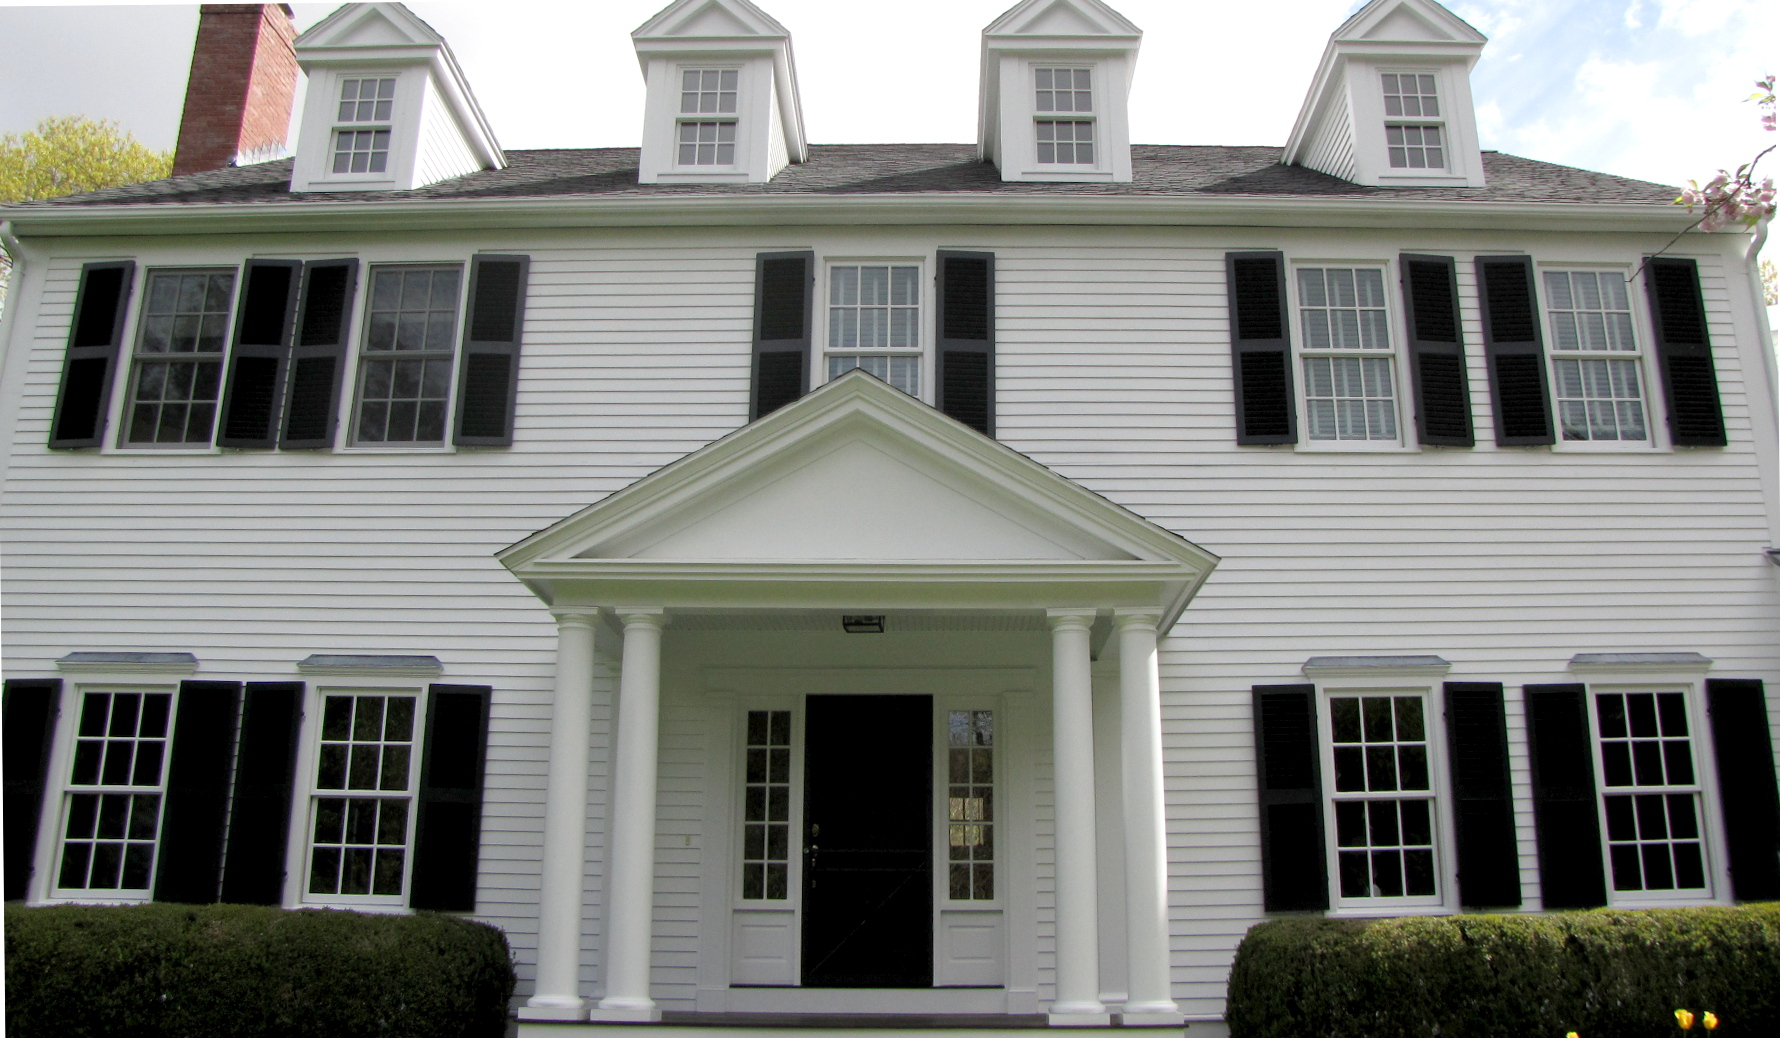 Home Painters Exterior Residential Lincoln Ma Hdf Painting - Exterior-home-painters